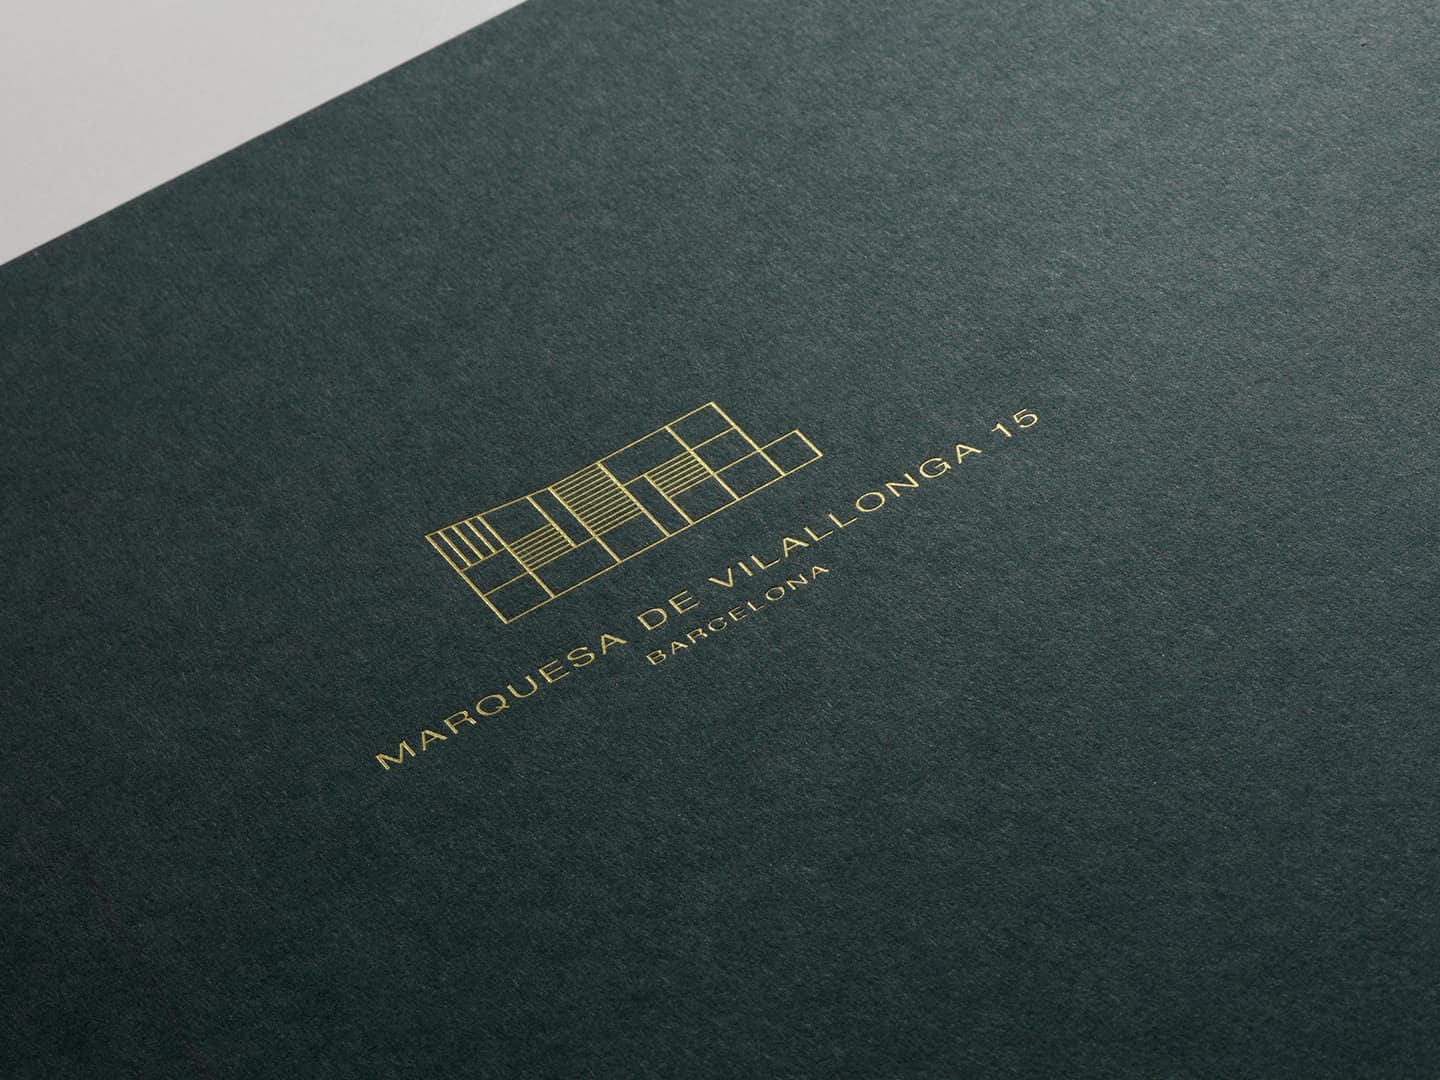 Detail of the cover of the KKH book